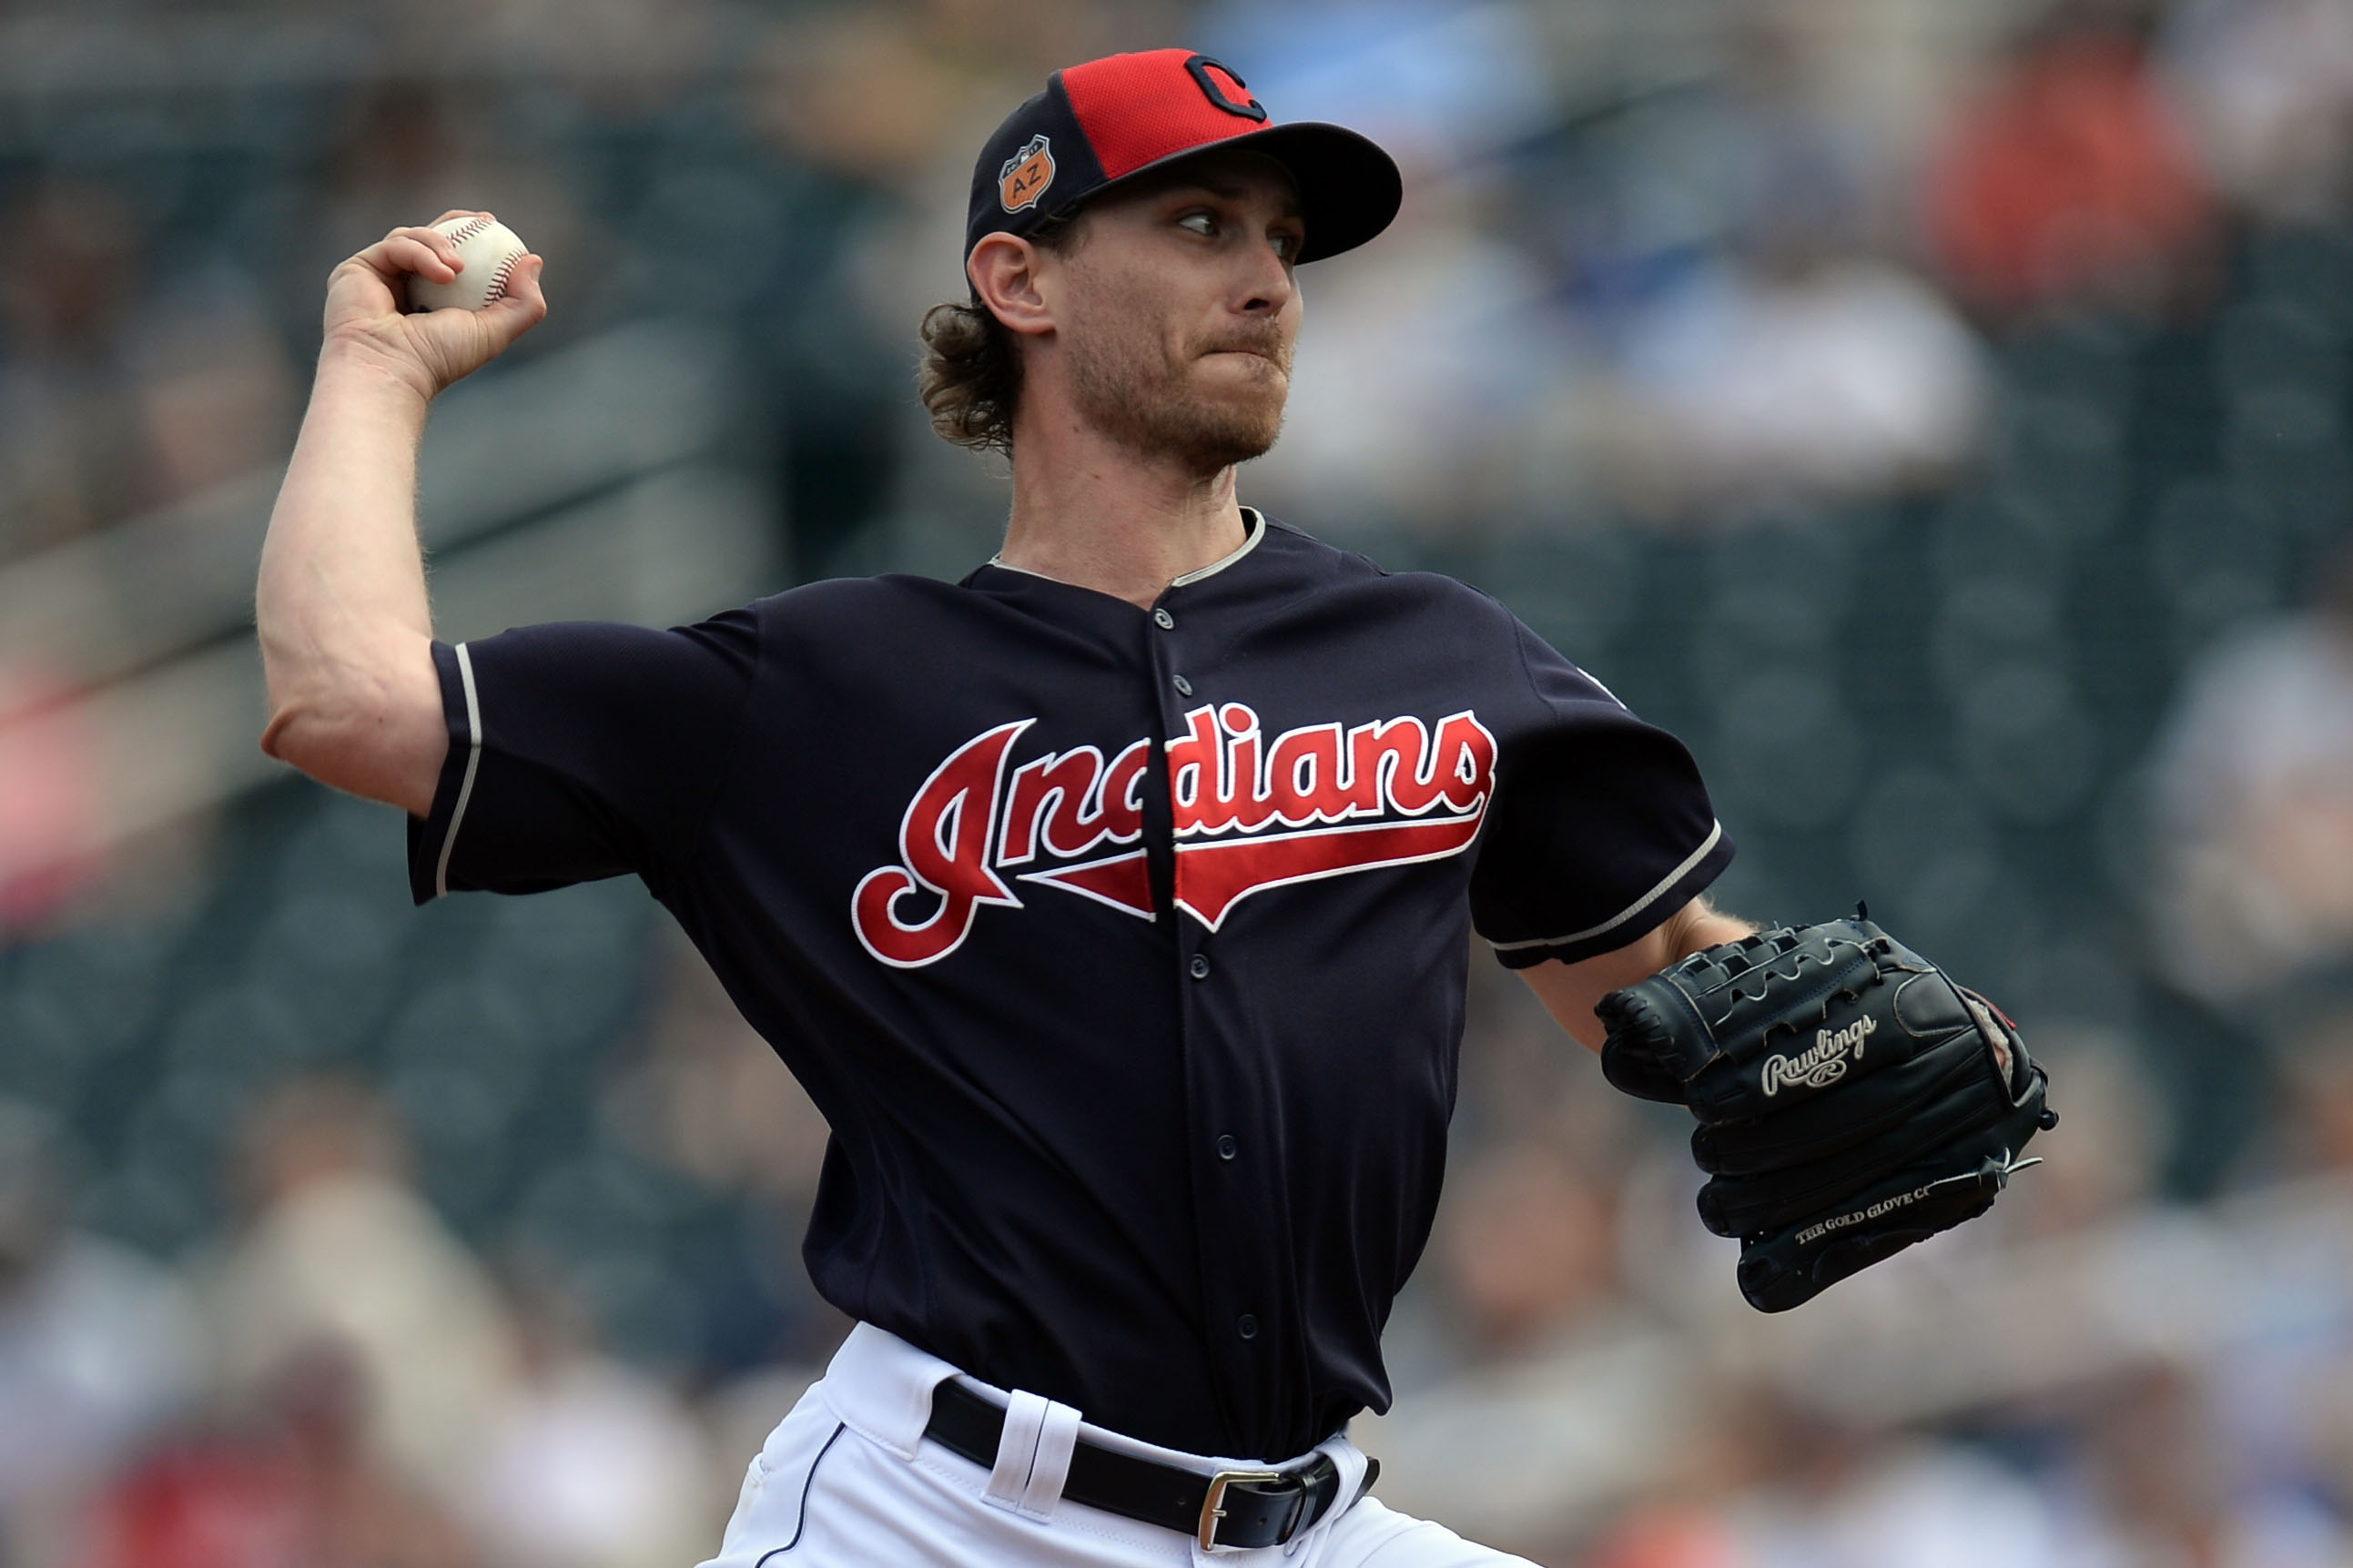 cb4b404ff White Sox Sink Indians 10-7  Game Notes and Scouting Takeaways - Page 4